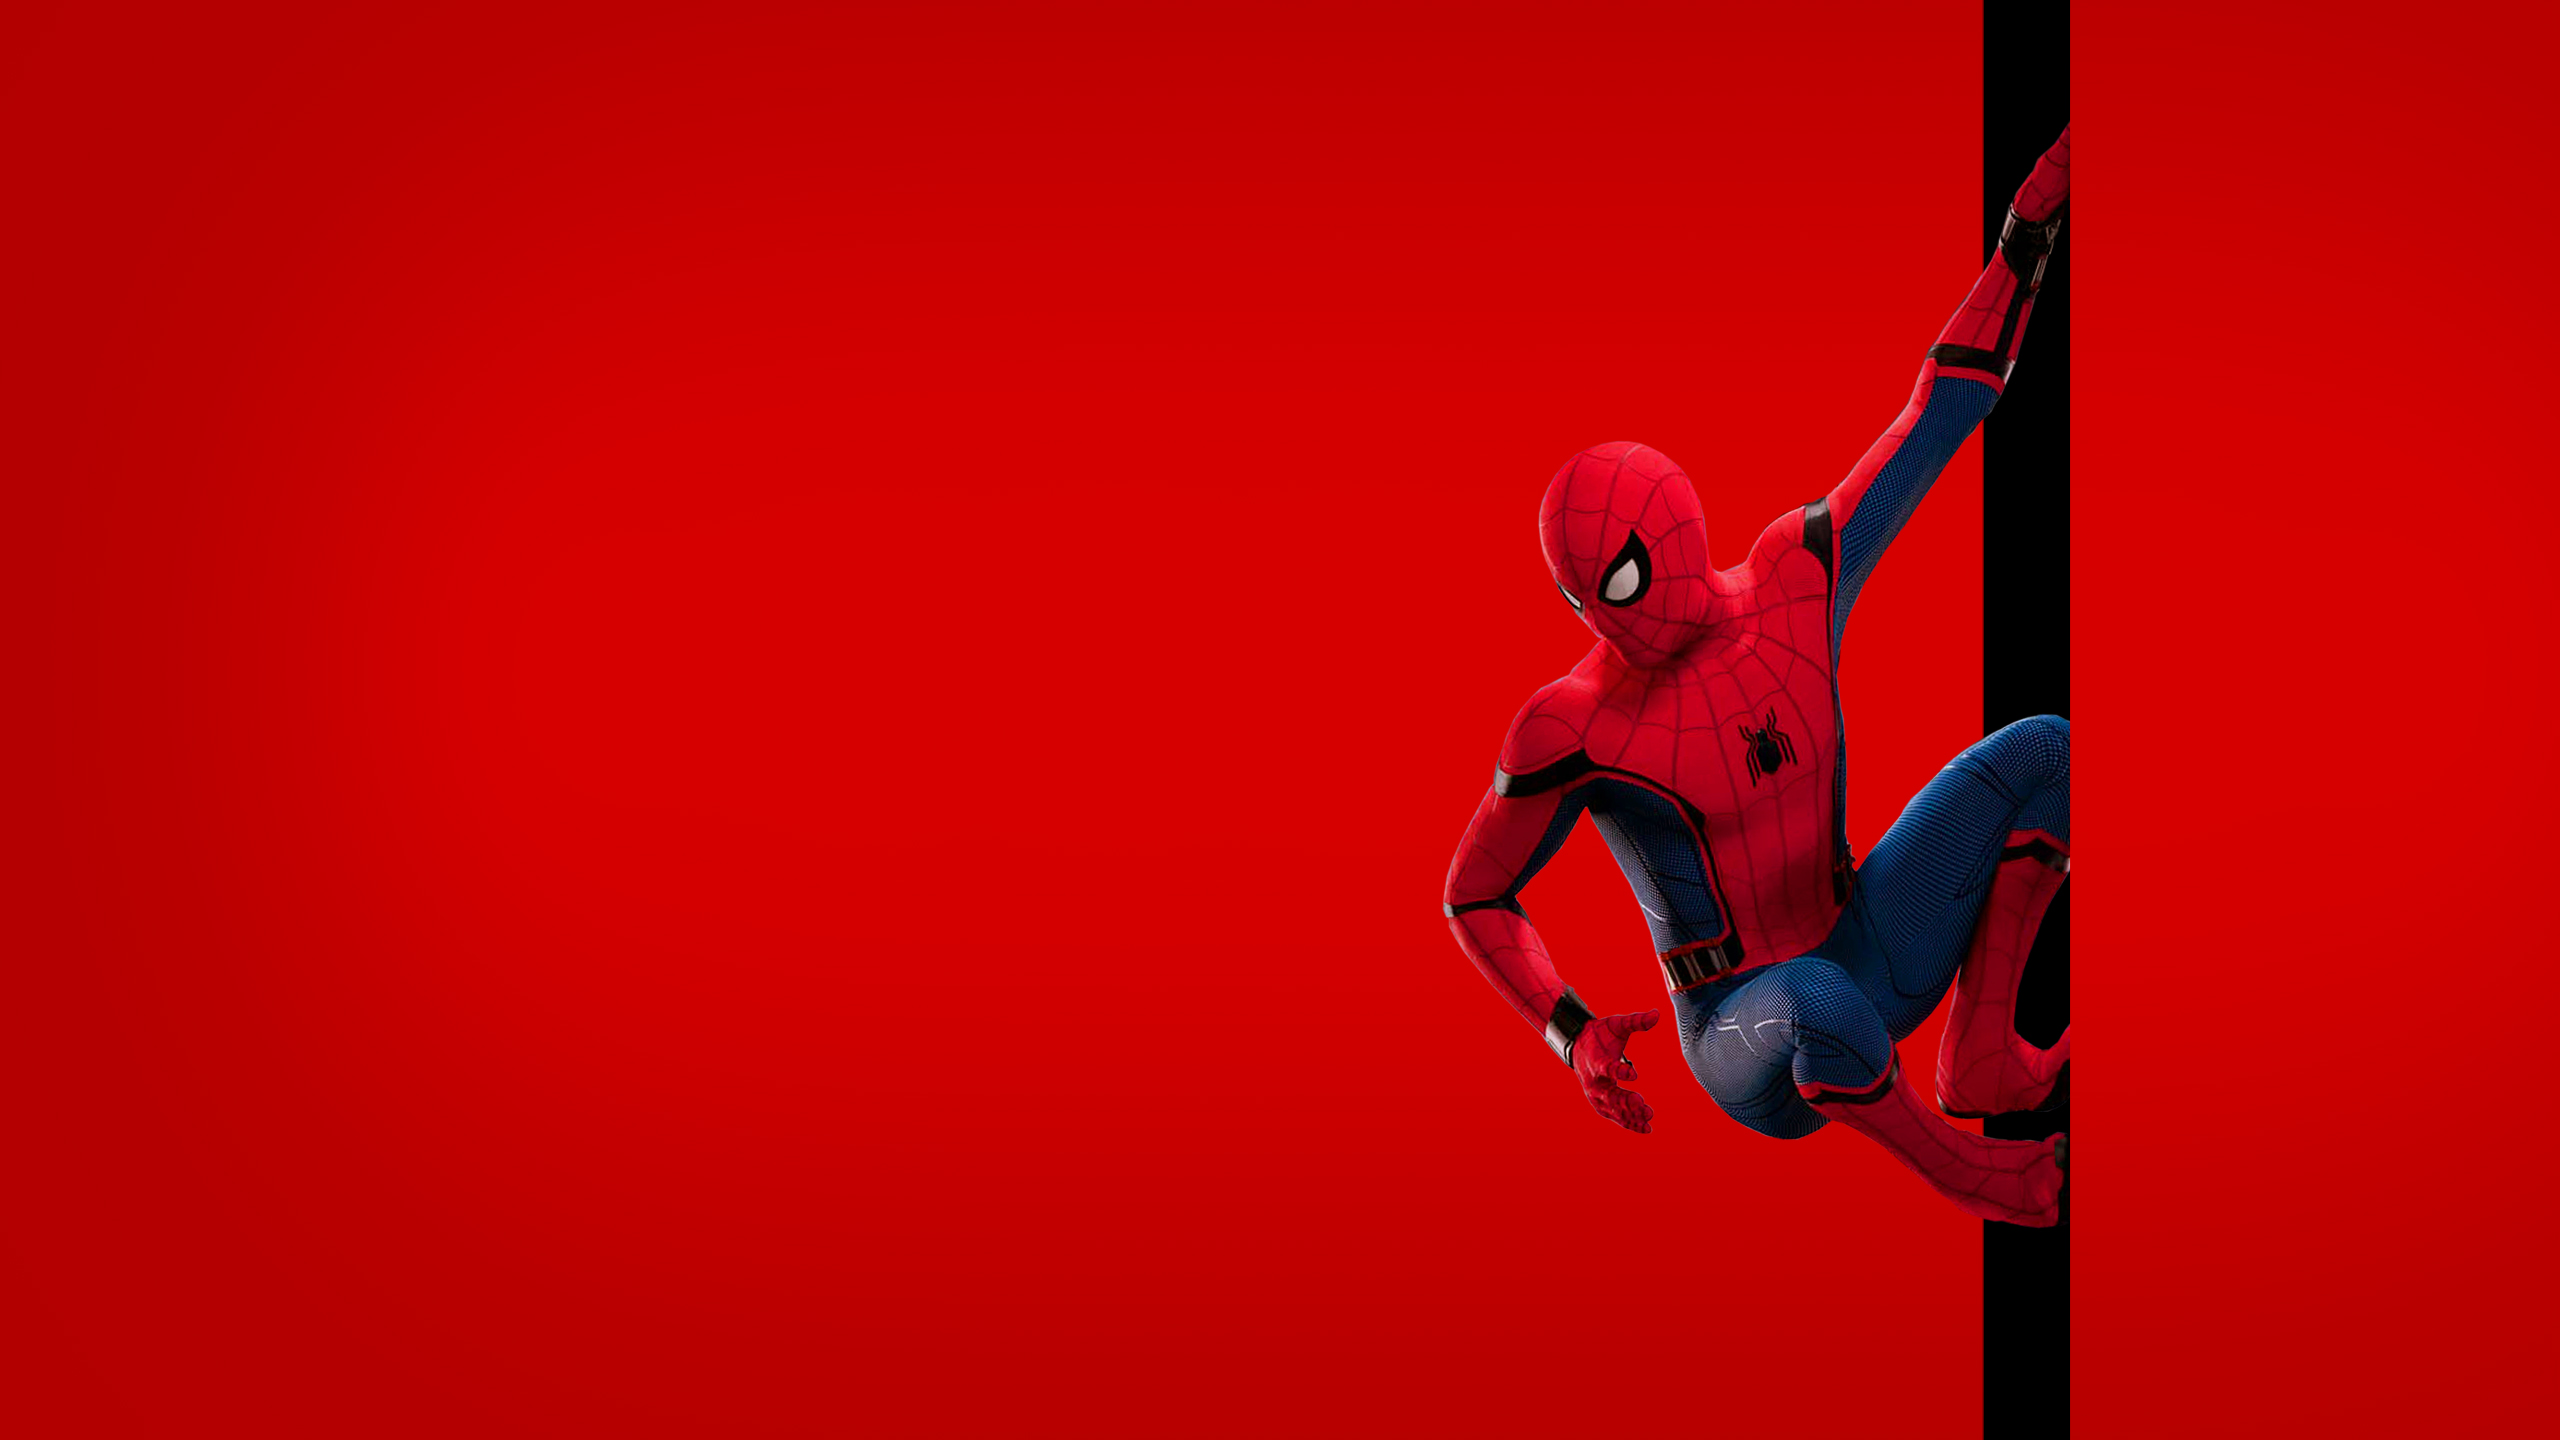 Spiderman Wallpaper 71 - 2560x1440